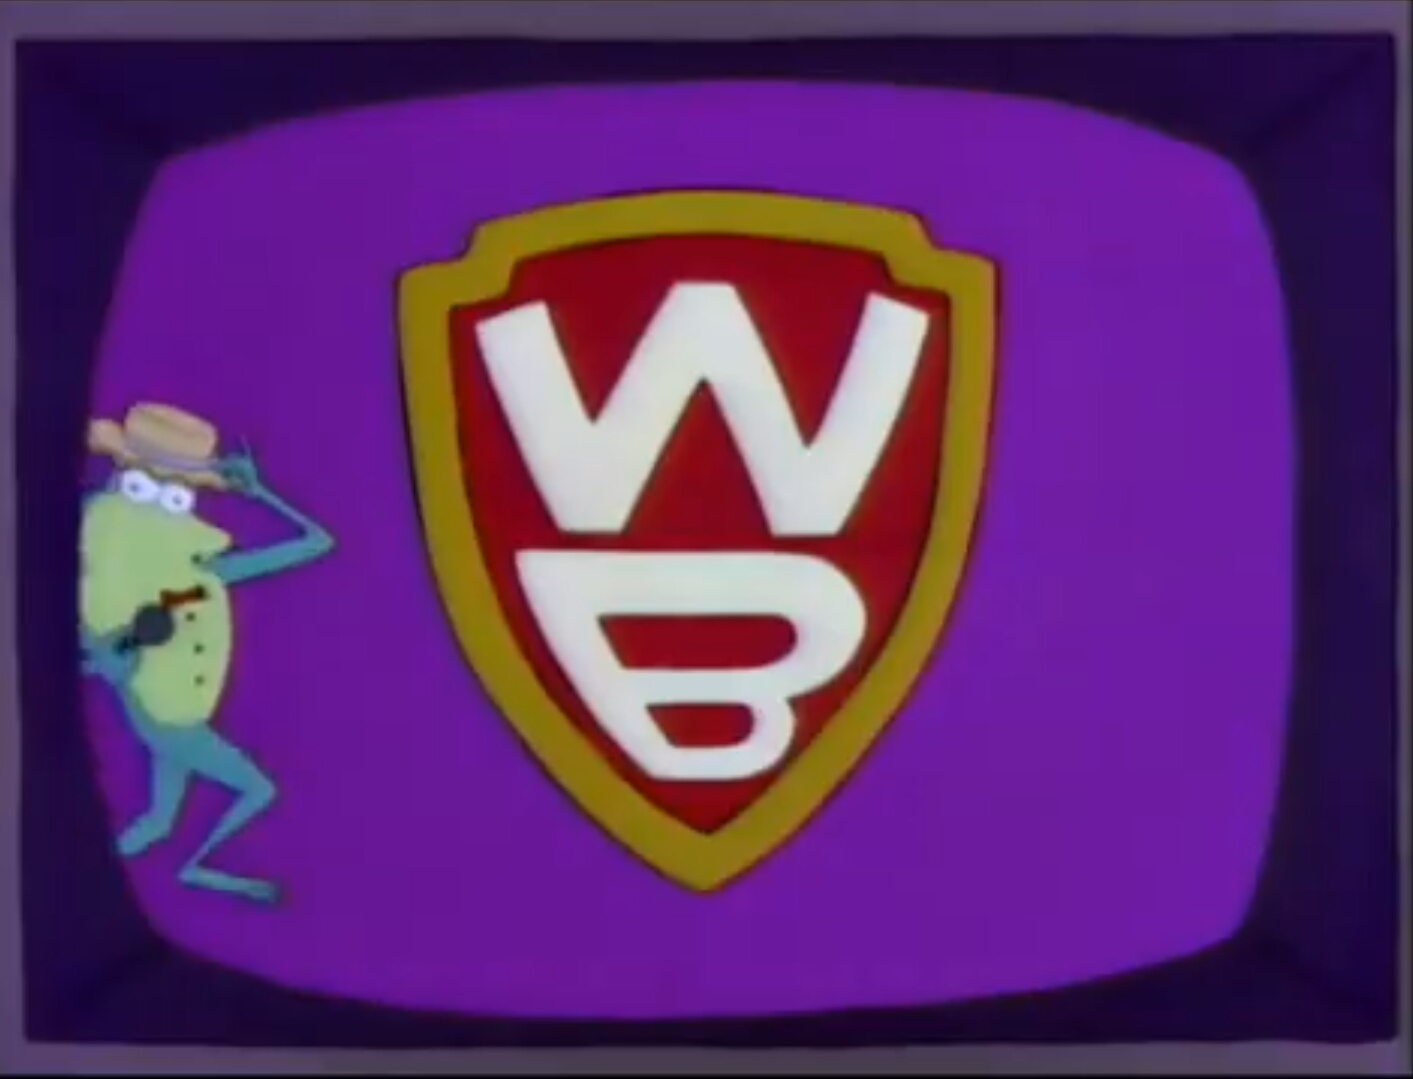 The Warner Brothers Network (The Simpsons)